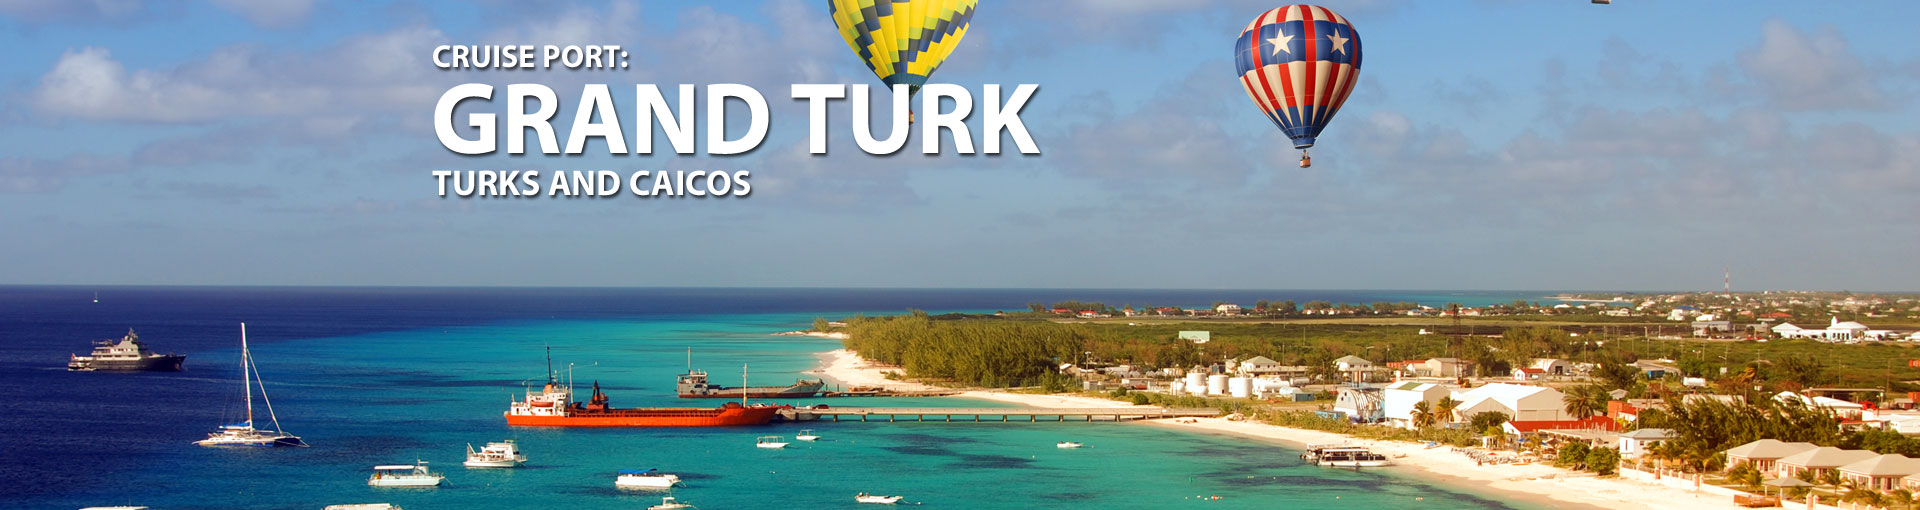 Cruises to Grand Turk, Turks And Caicos